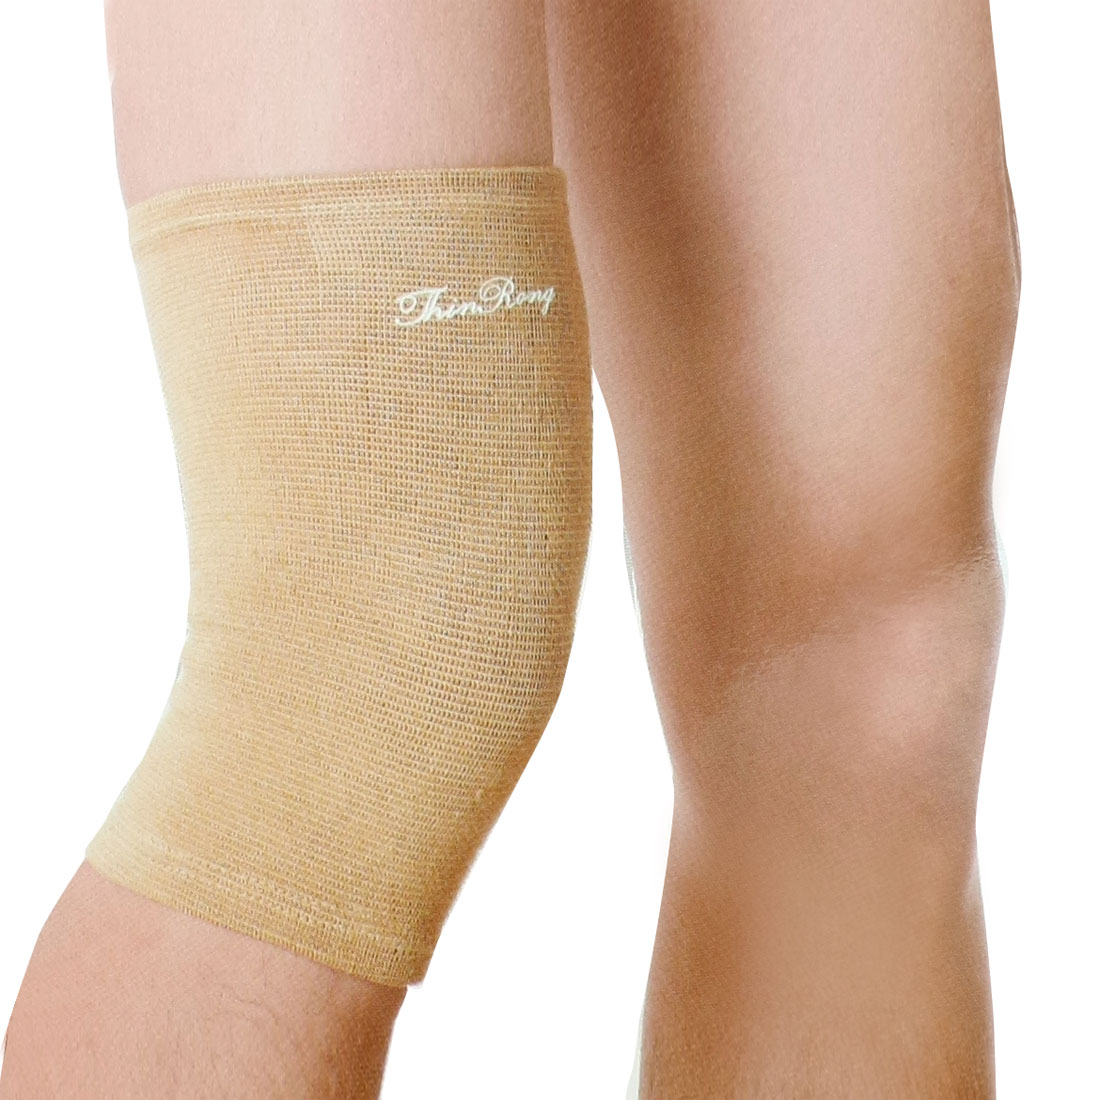 Outdoor Sports Texturing Elastic Sleeve Knee Wrap Protective Support Khaki Pair